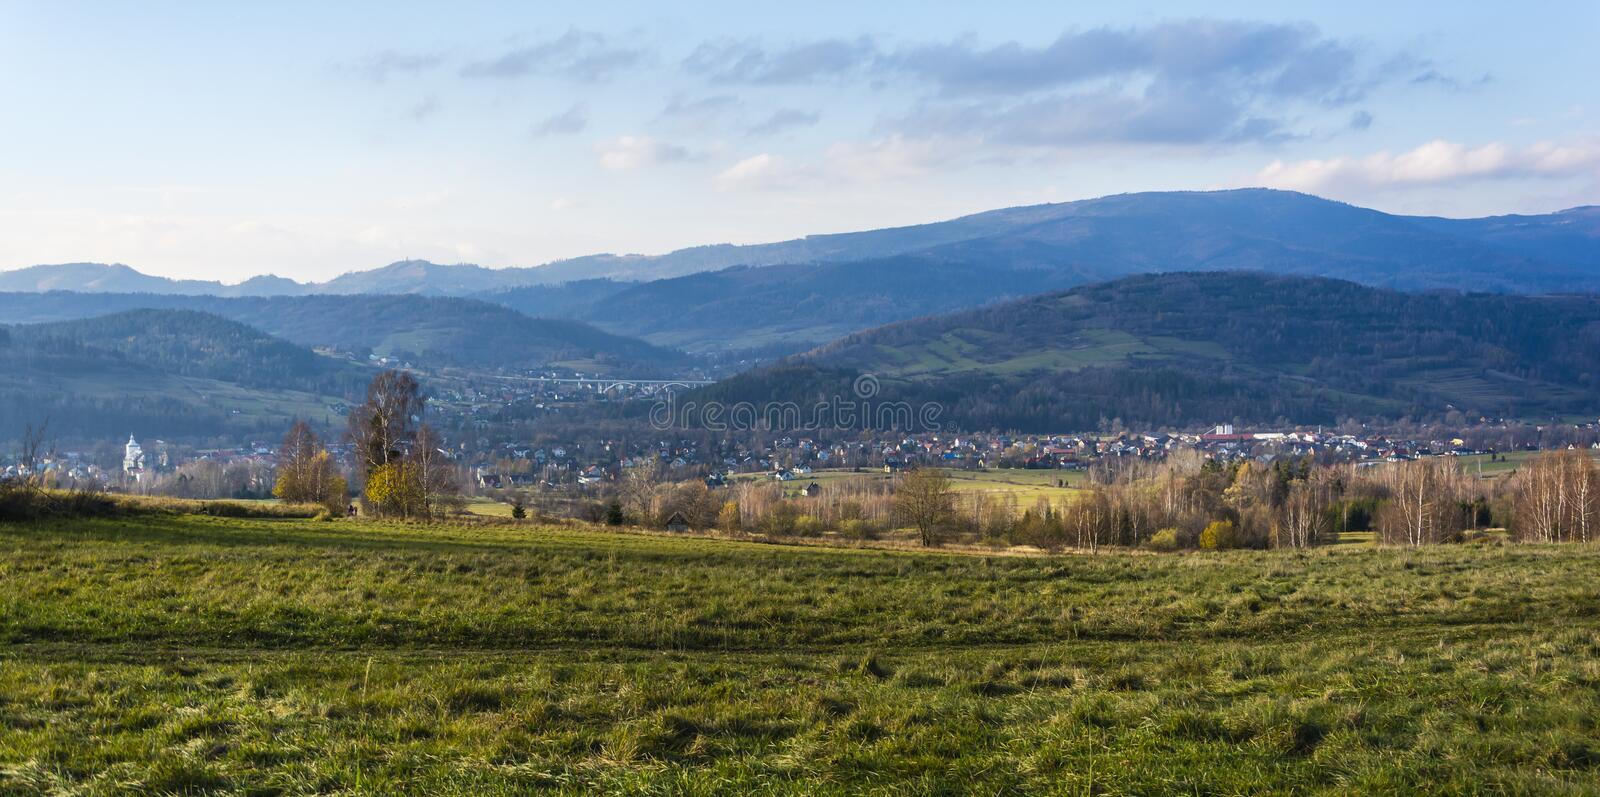 View of the Milowka village in Zywiec County, Silesian Voivodeship, in southern Poland stock photography